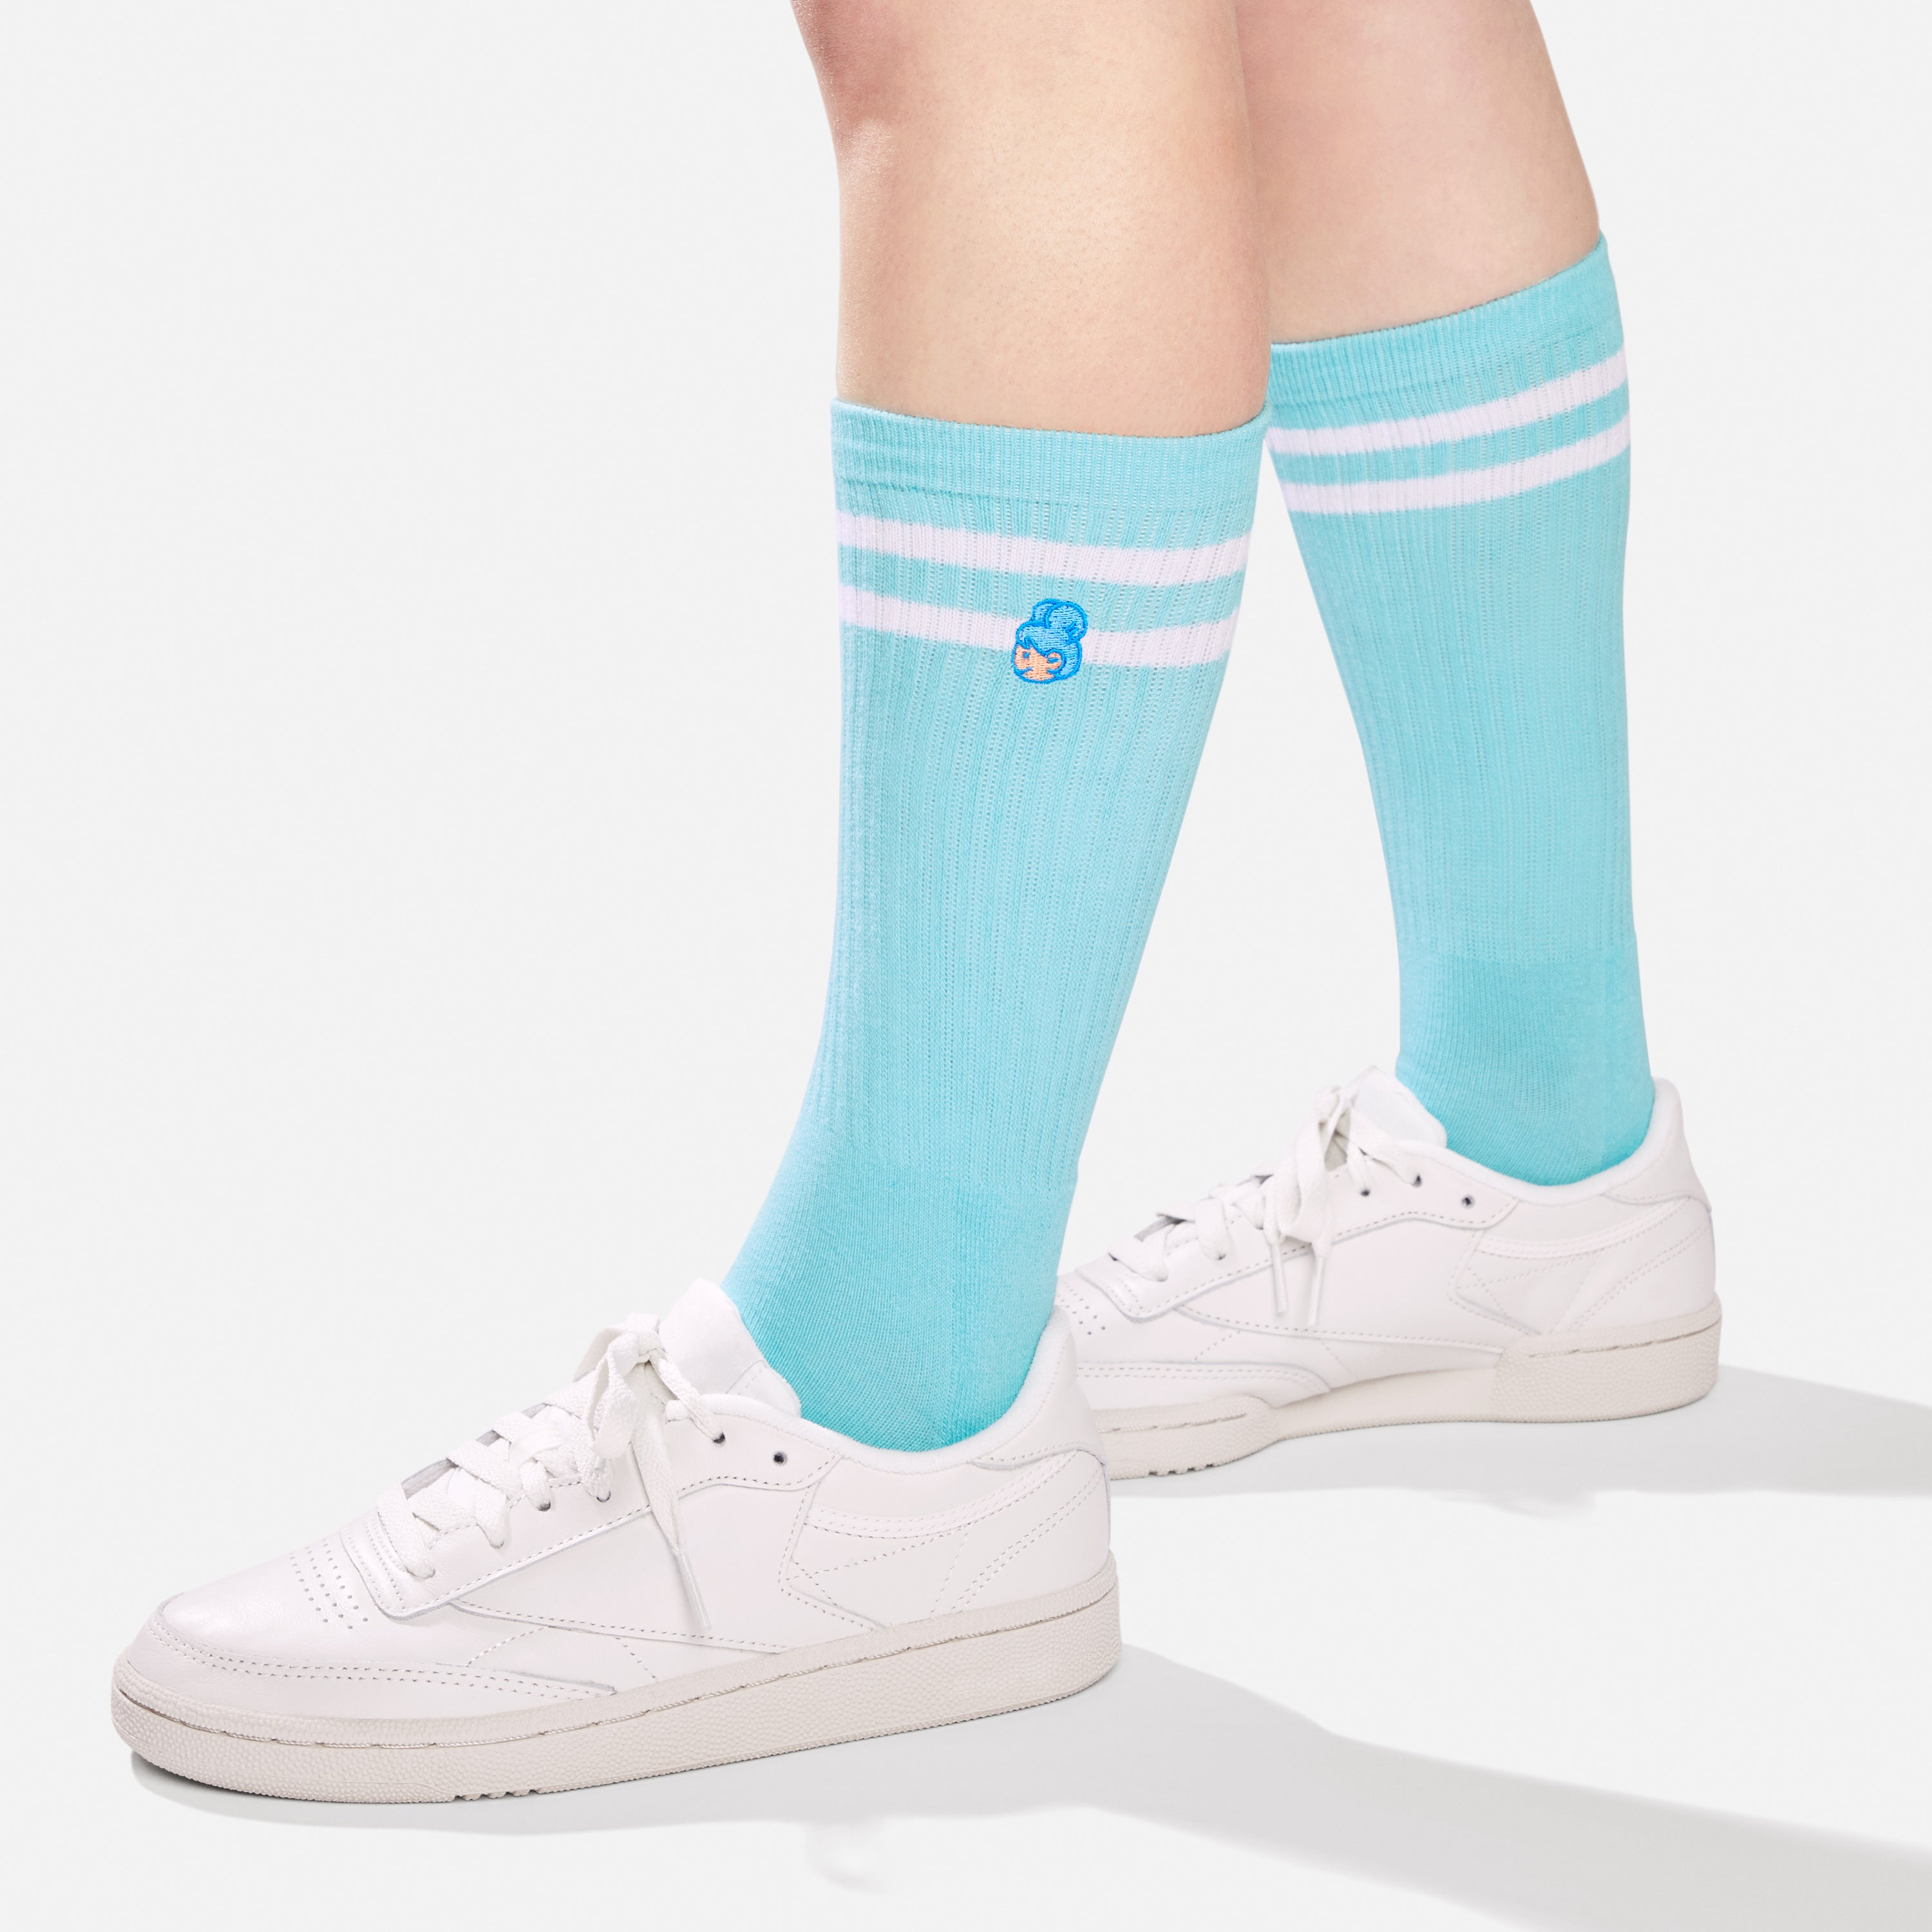 Lily socks - on model